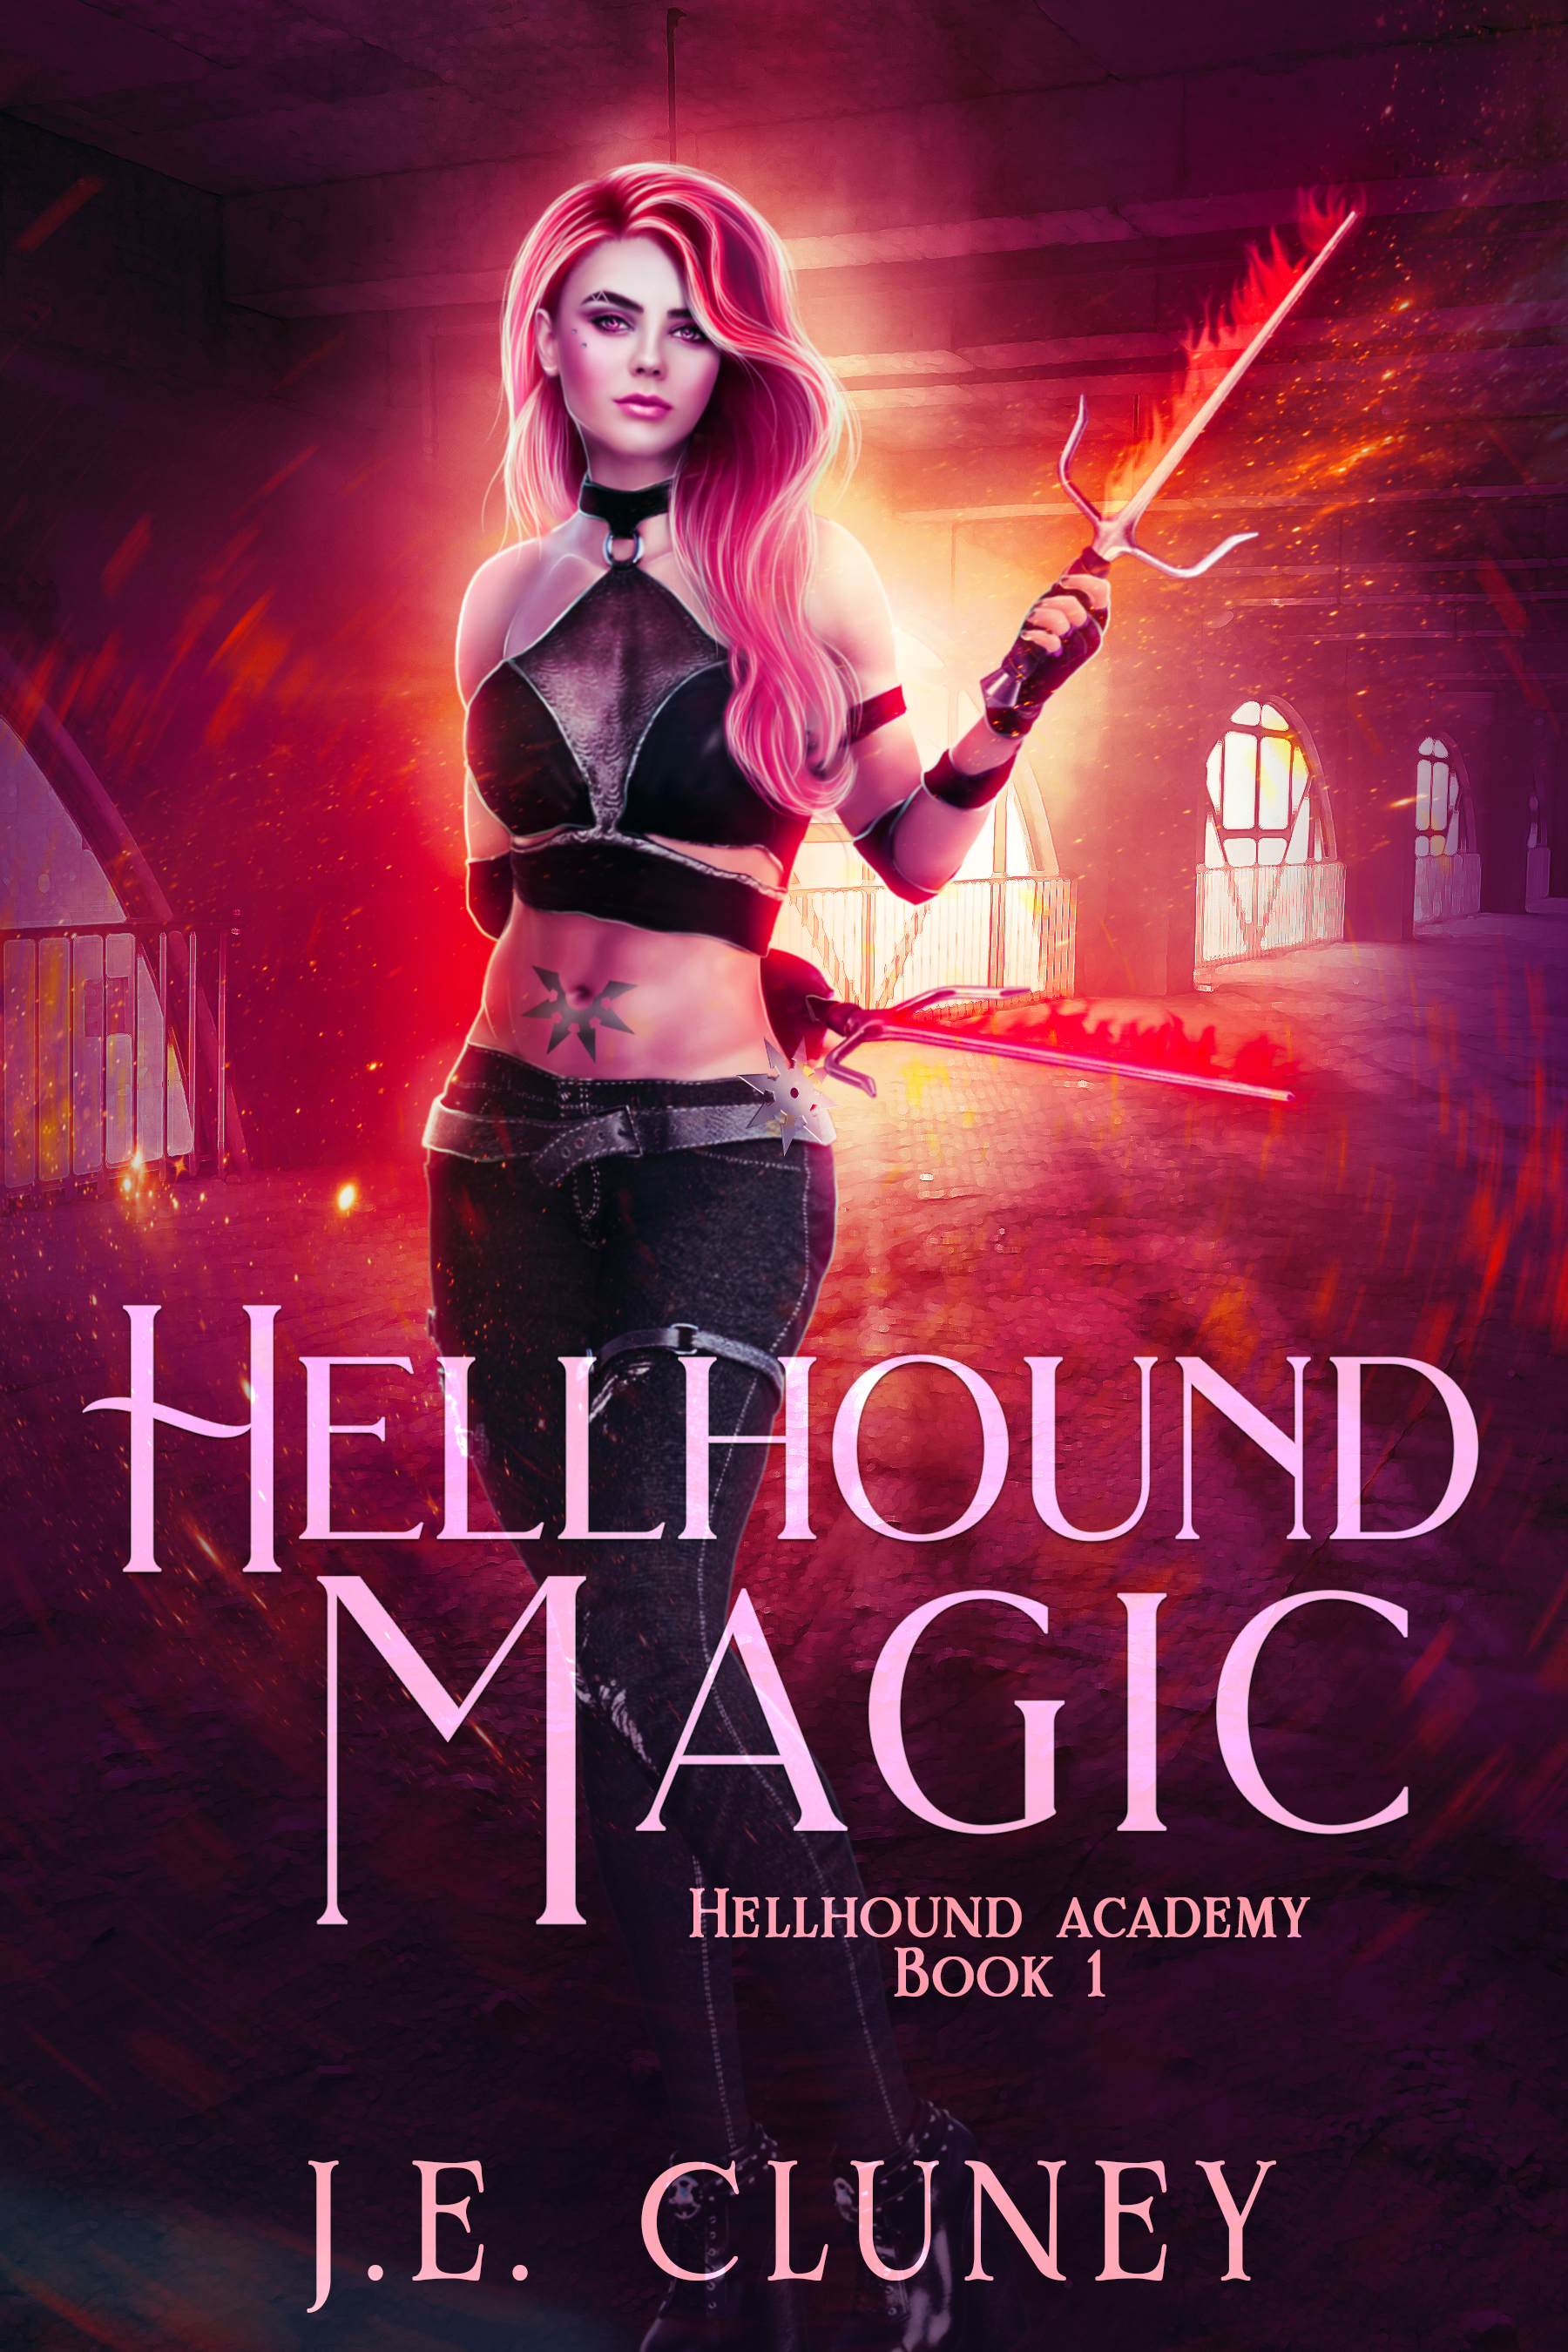 Hellhound Magic